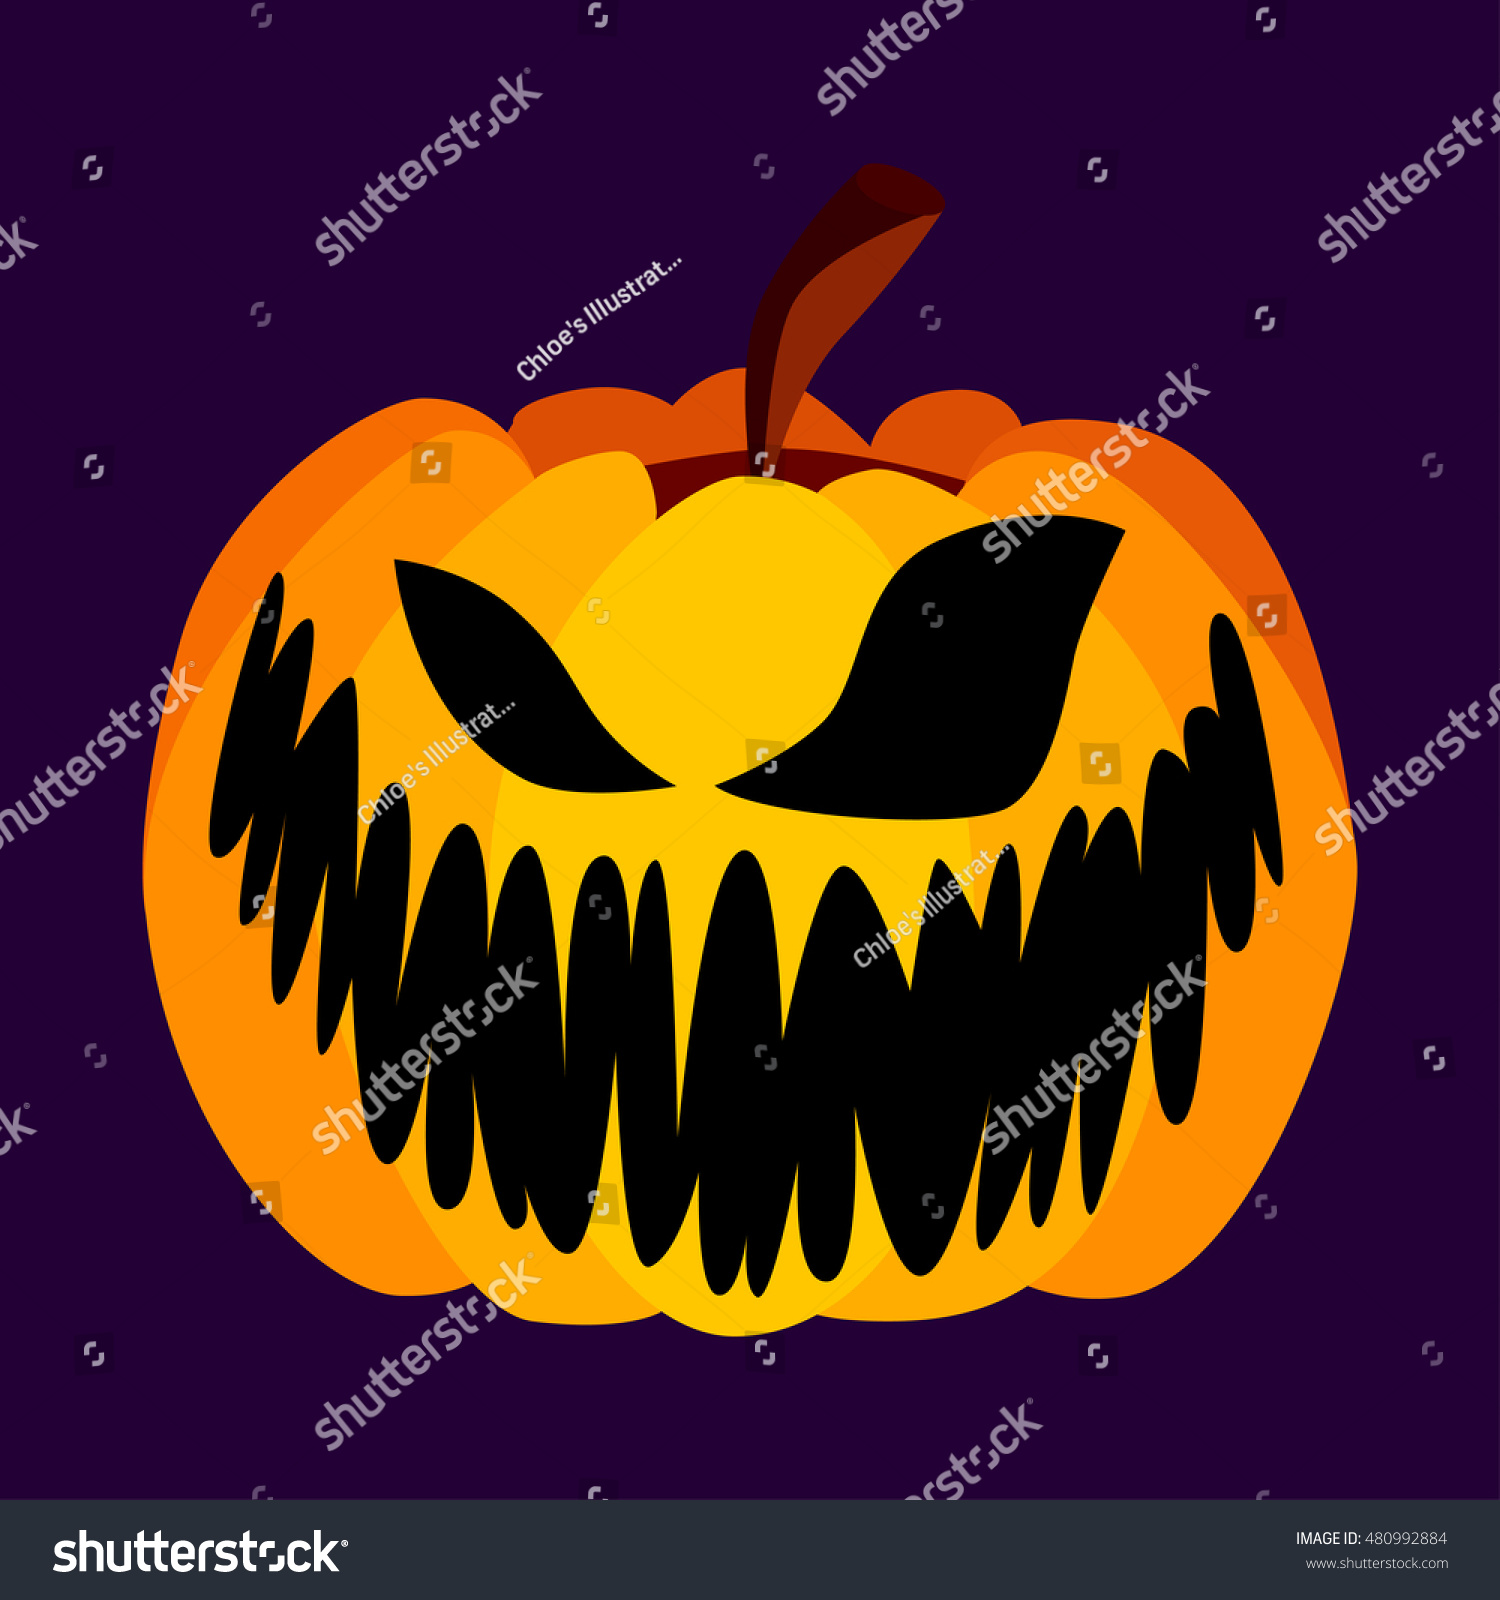 vector orange festive scary halloween pumpkin with a scary face on purple background spooky halloween